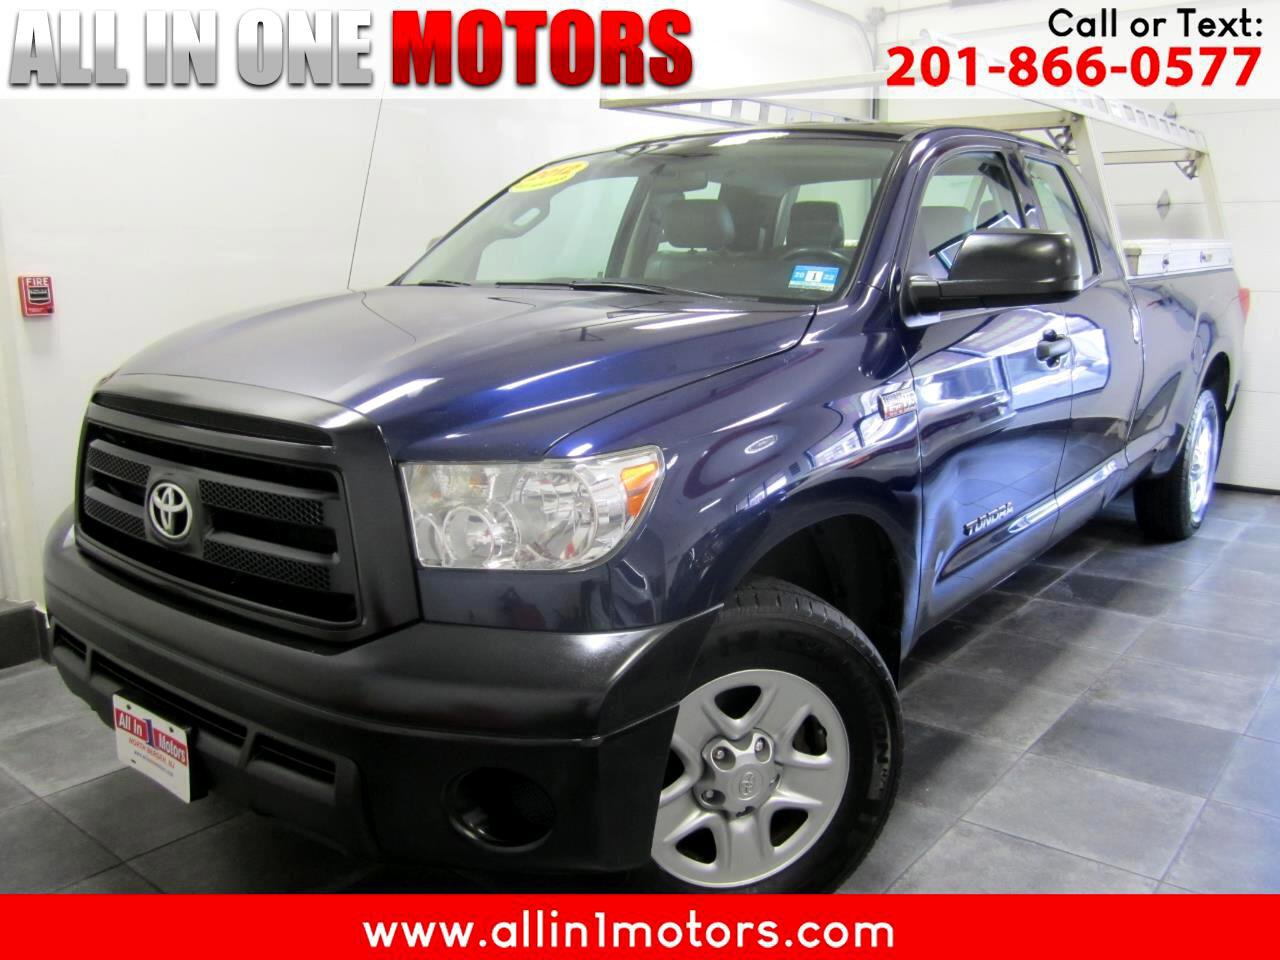 Toyota Tundra Under 500 Dollars Down